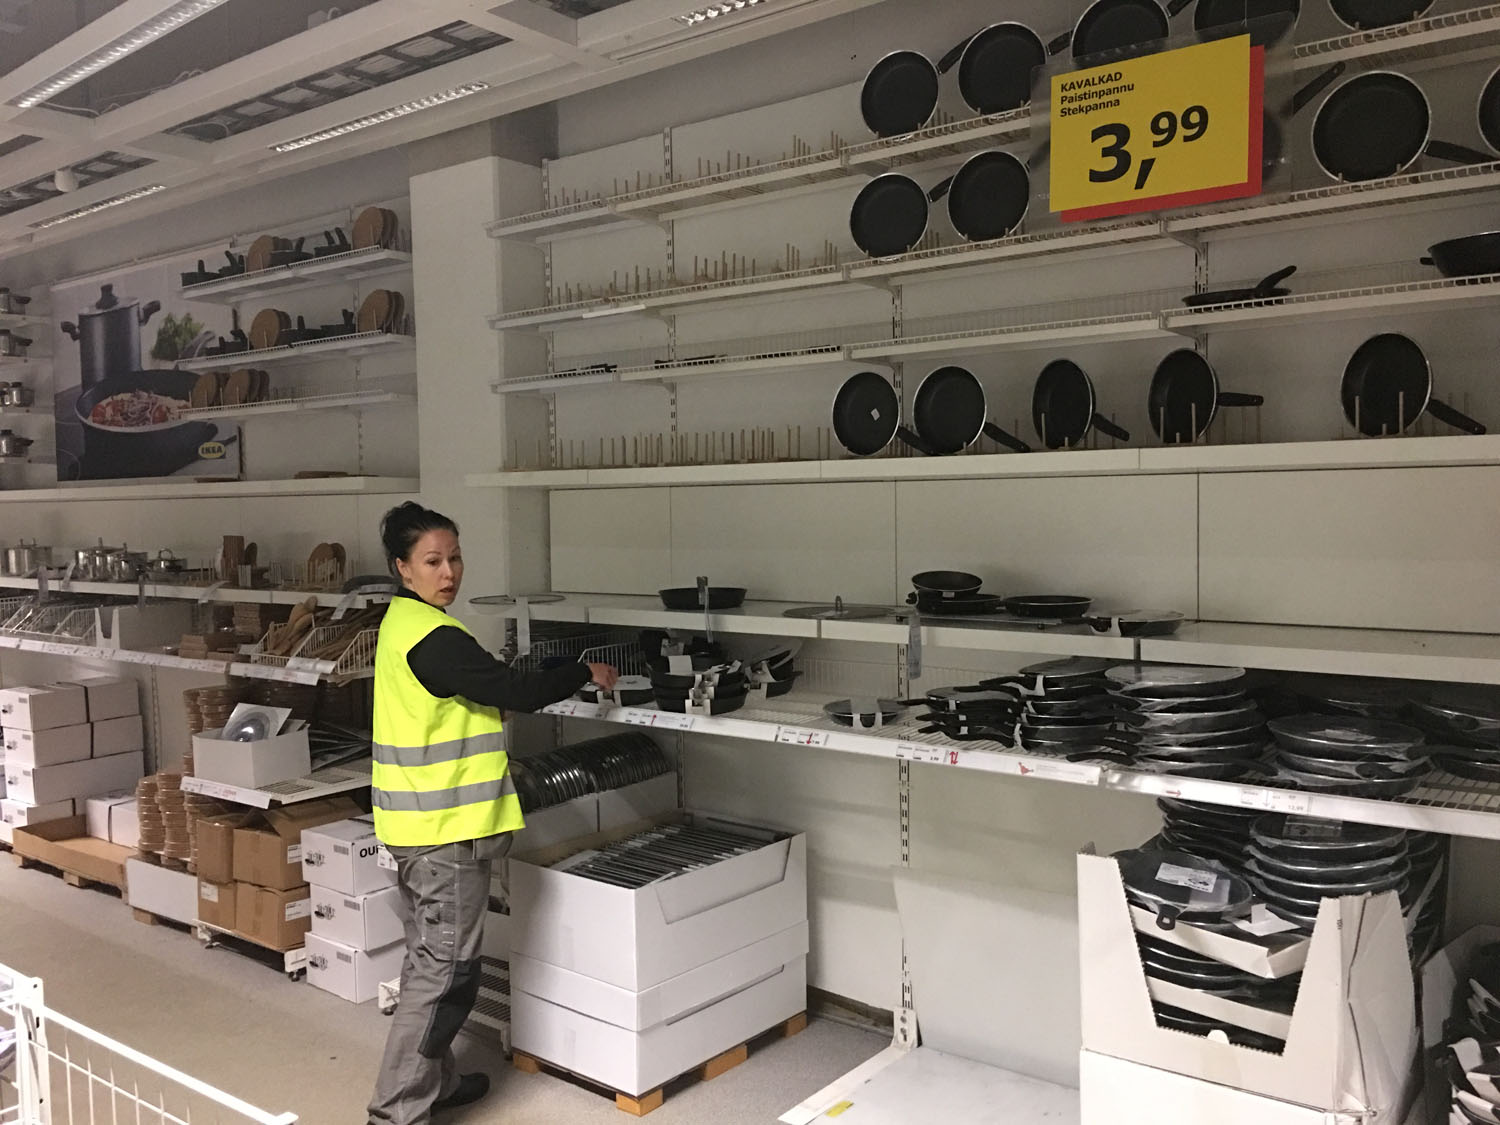 Before: one item has been sold out completely on the frying pan section during the weekend and the existing rest of the display is also mixed up. Just to be sure, the location is pointed to me by another visual merchandiser at IKEA Espoo.